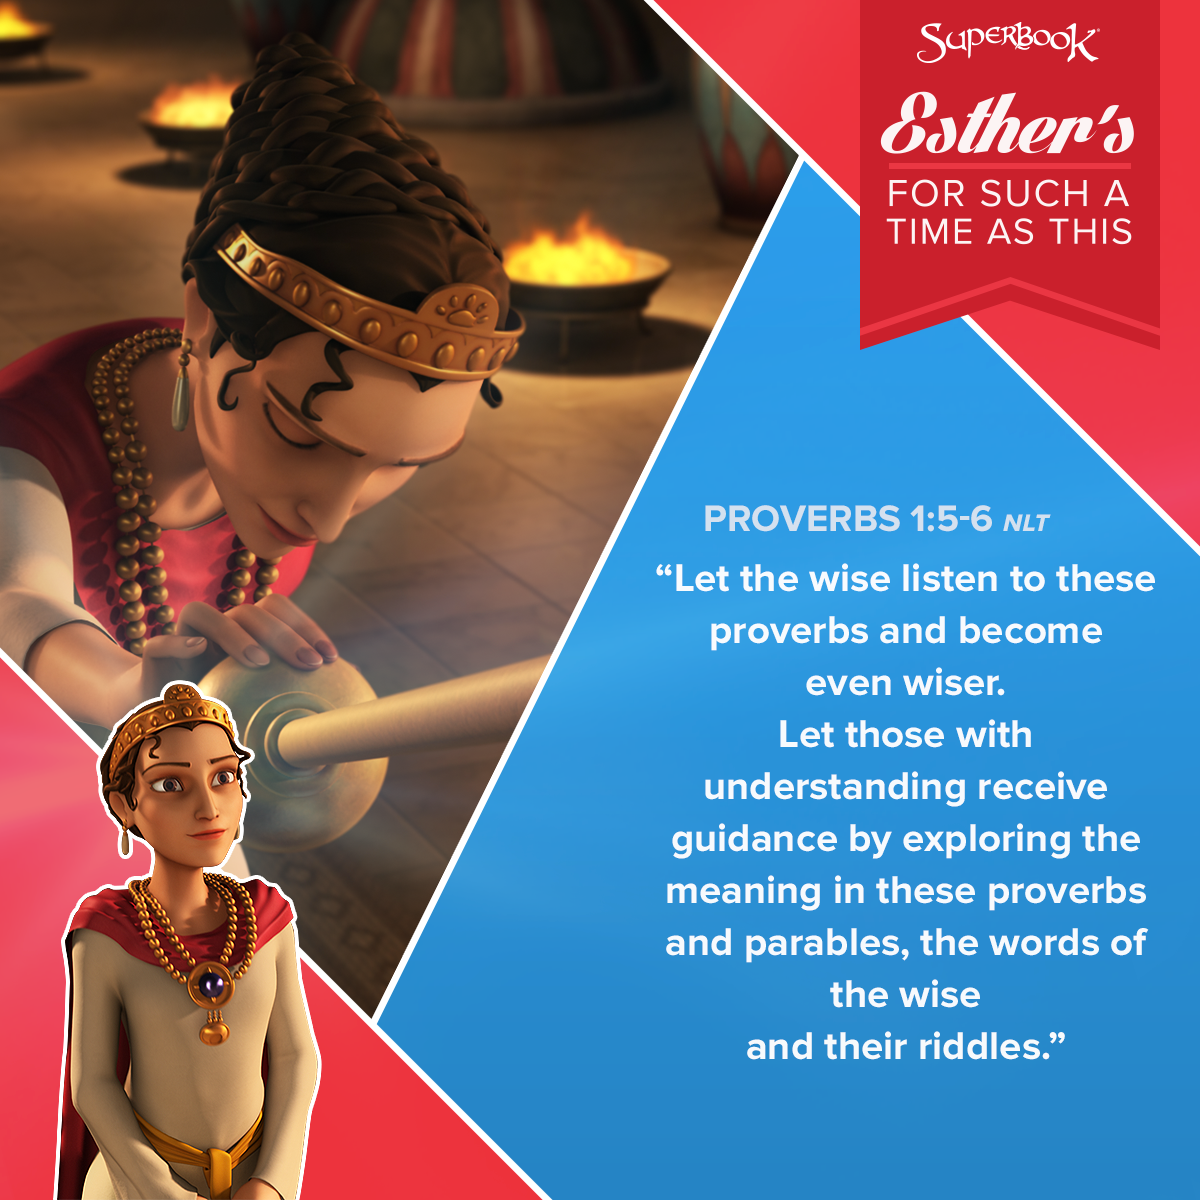 Wisdom Of Esther by Superbook Proverbs, Wise quotes